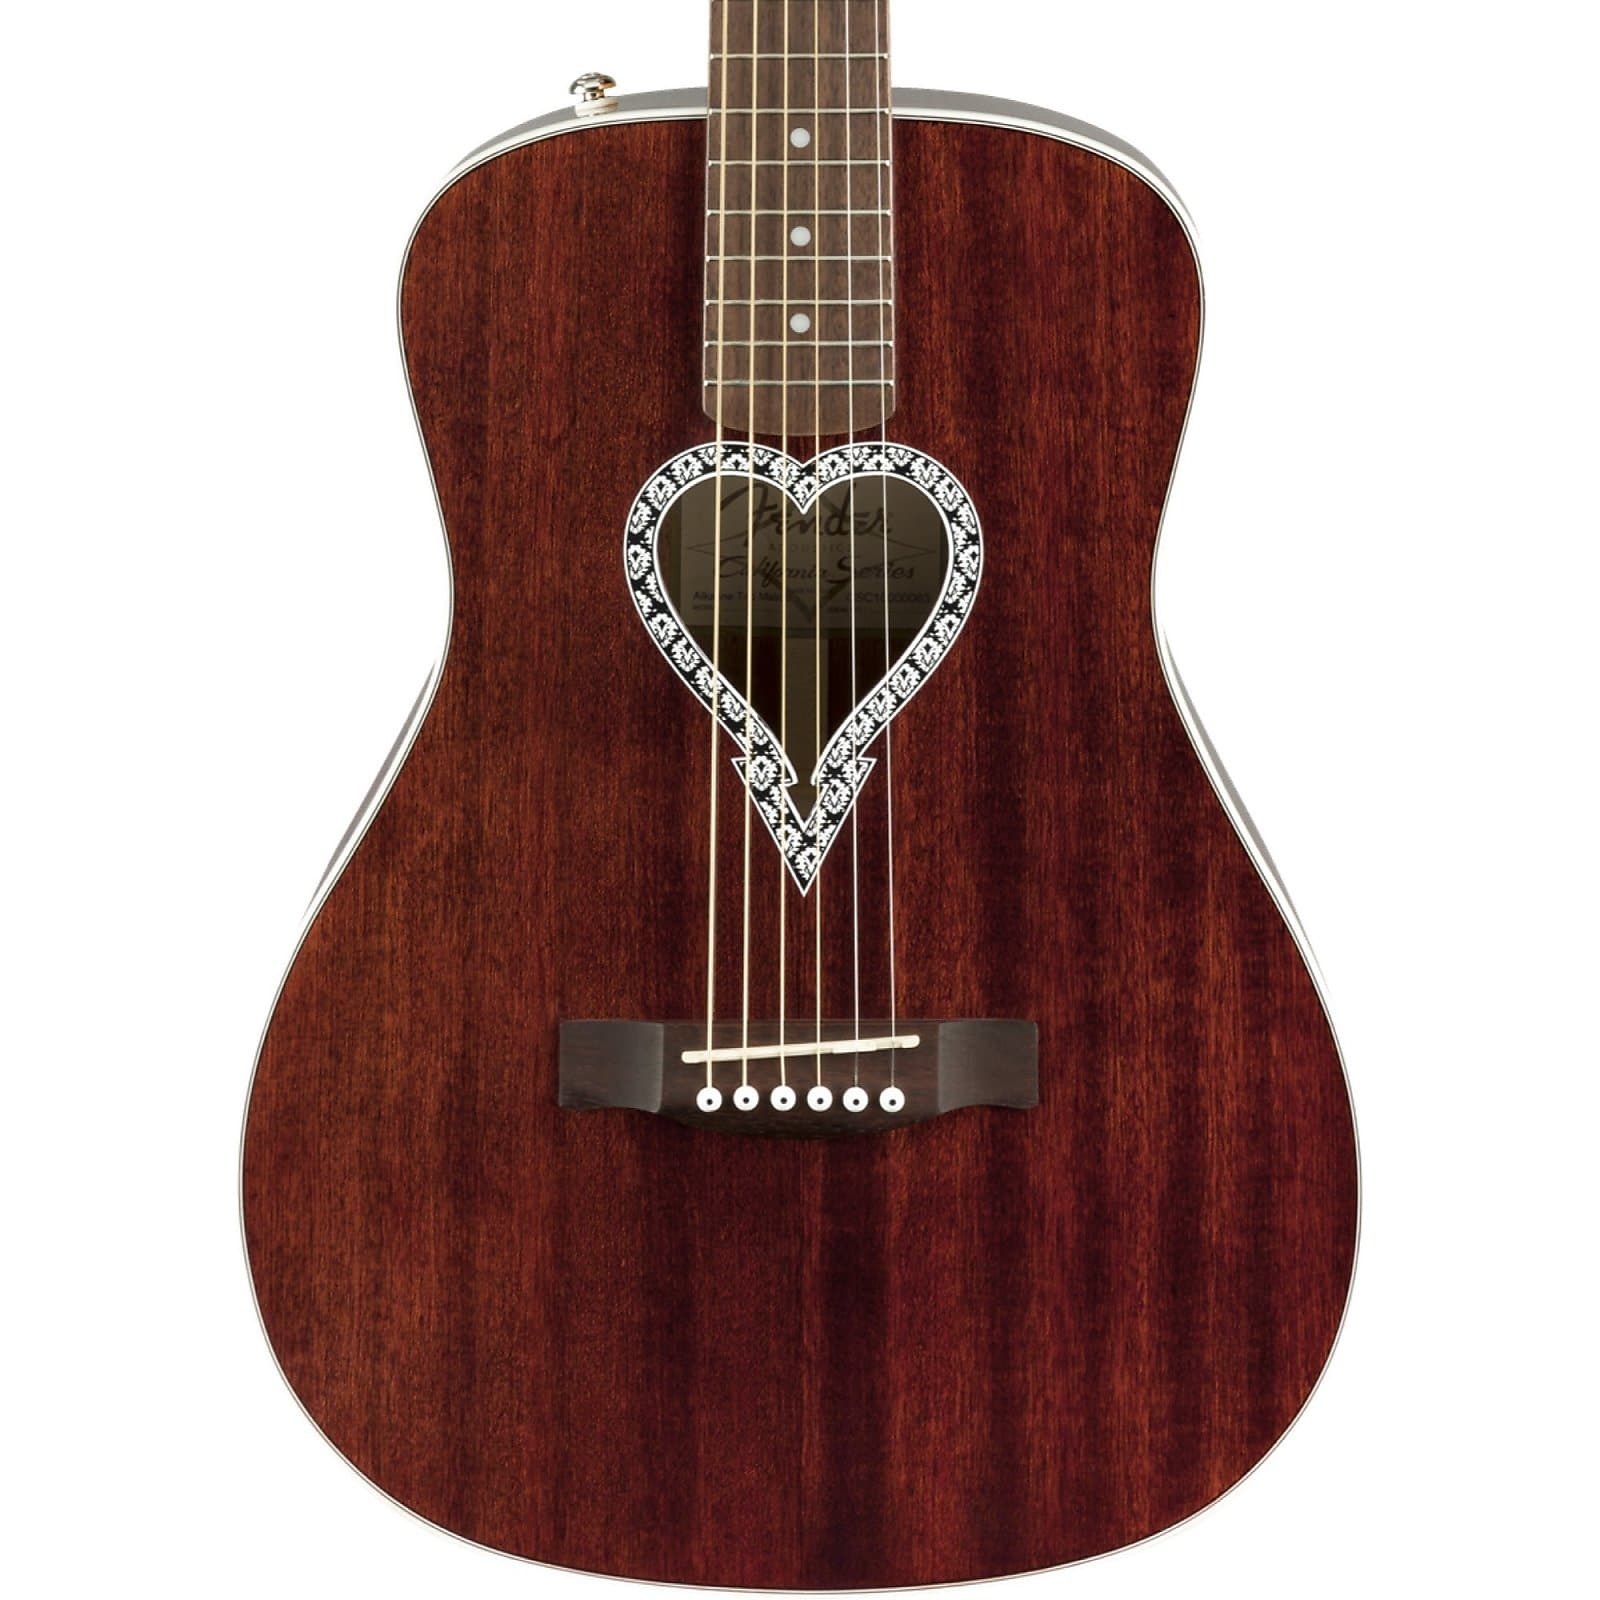 Fender Alkaline Trio Malibu Acoustic Guitar - Natural